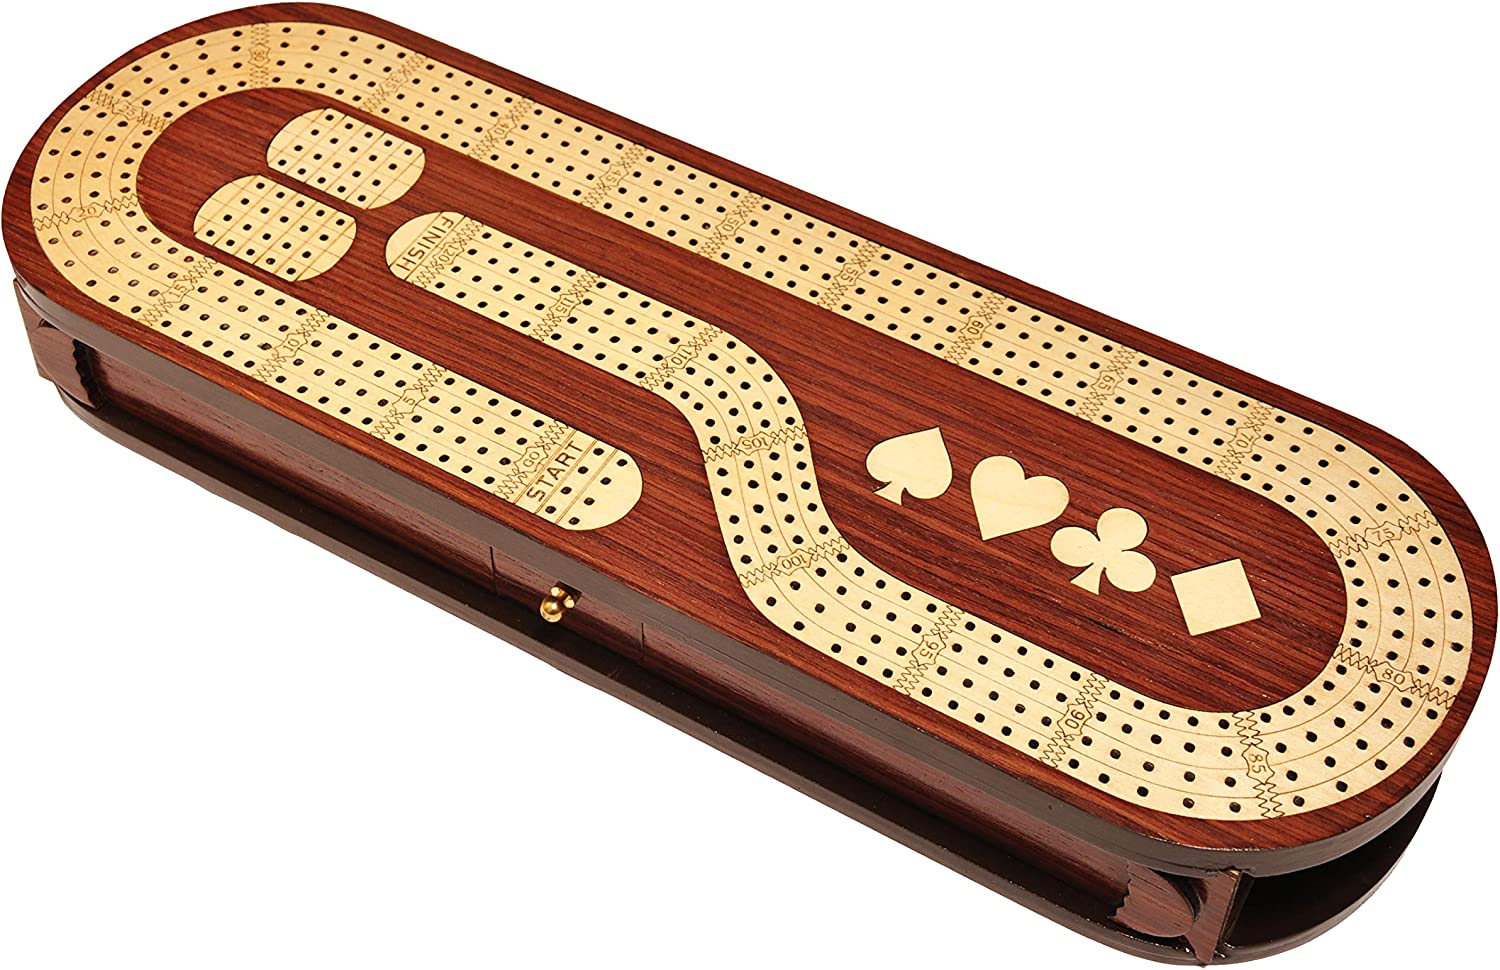 Palm Royal Handicrafts - 4 Track with Made Board ついに再販開始 Rose Cribbage 商い W